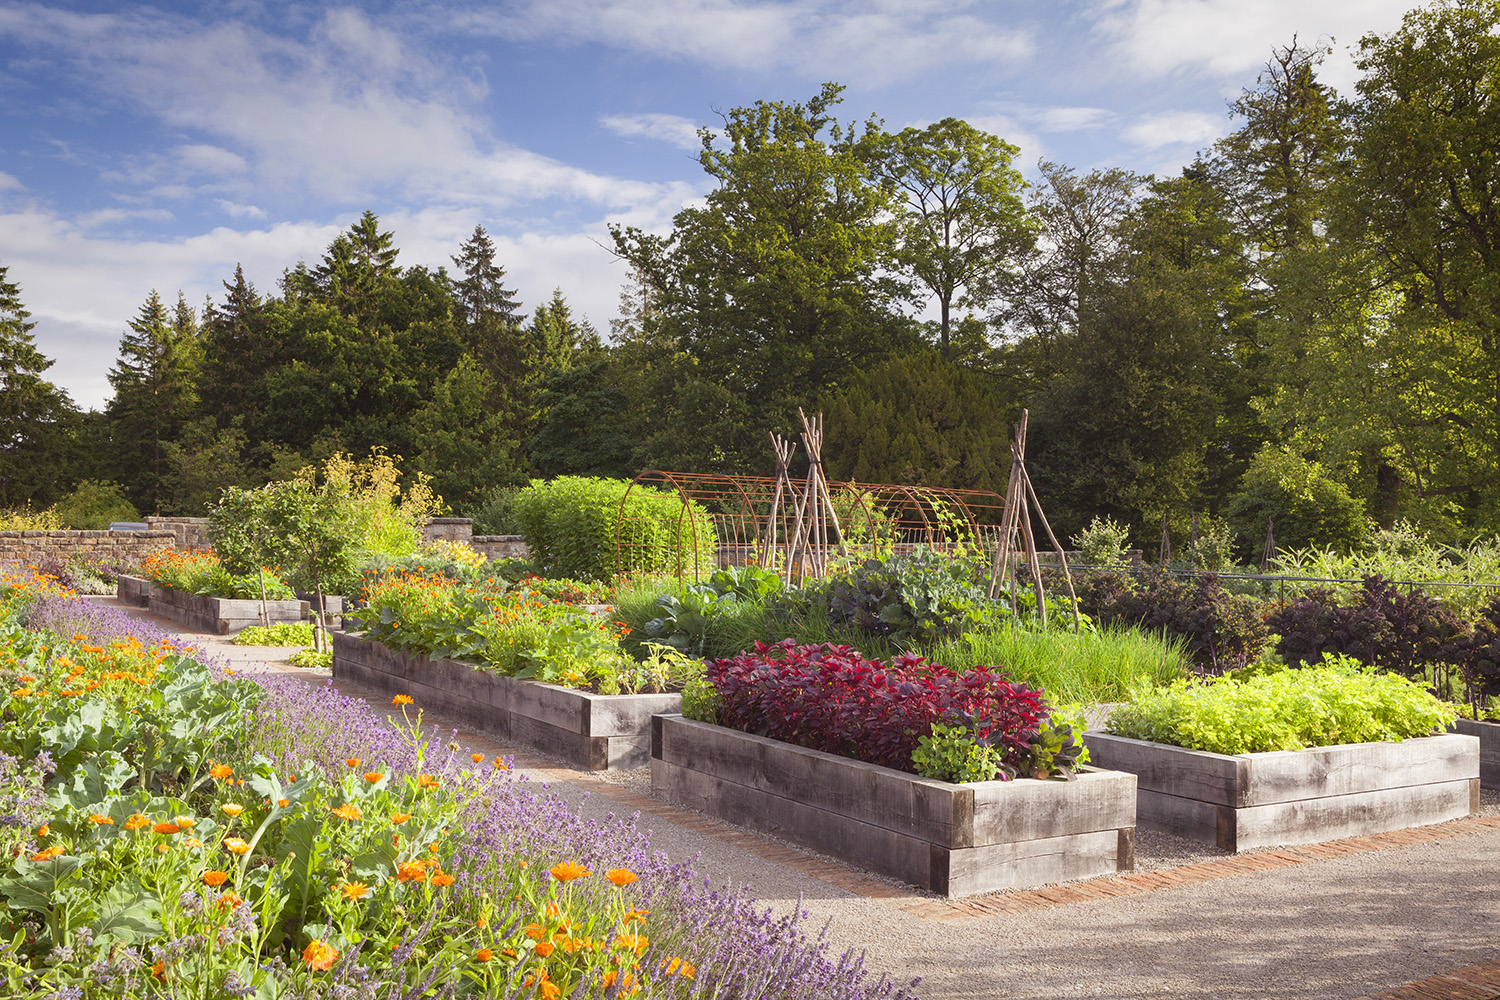 General view of kitchen garden at Rudding Park